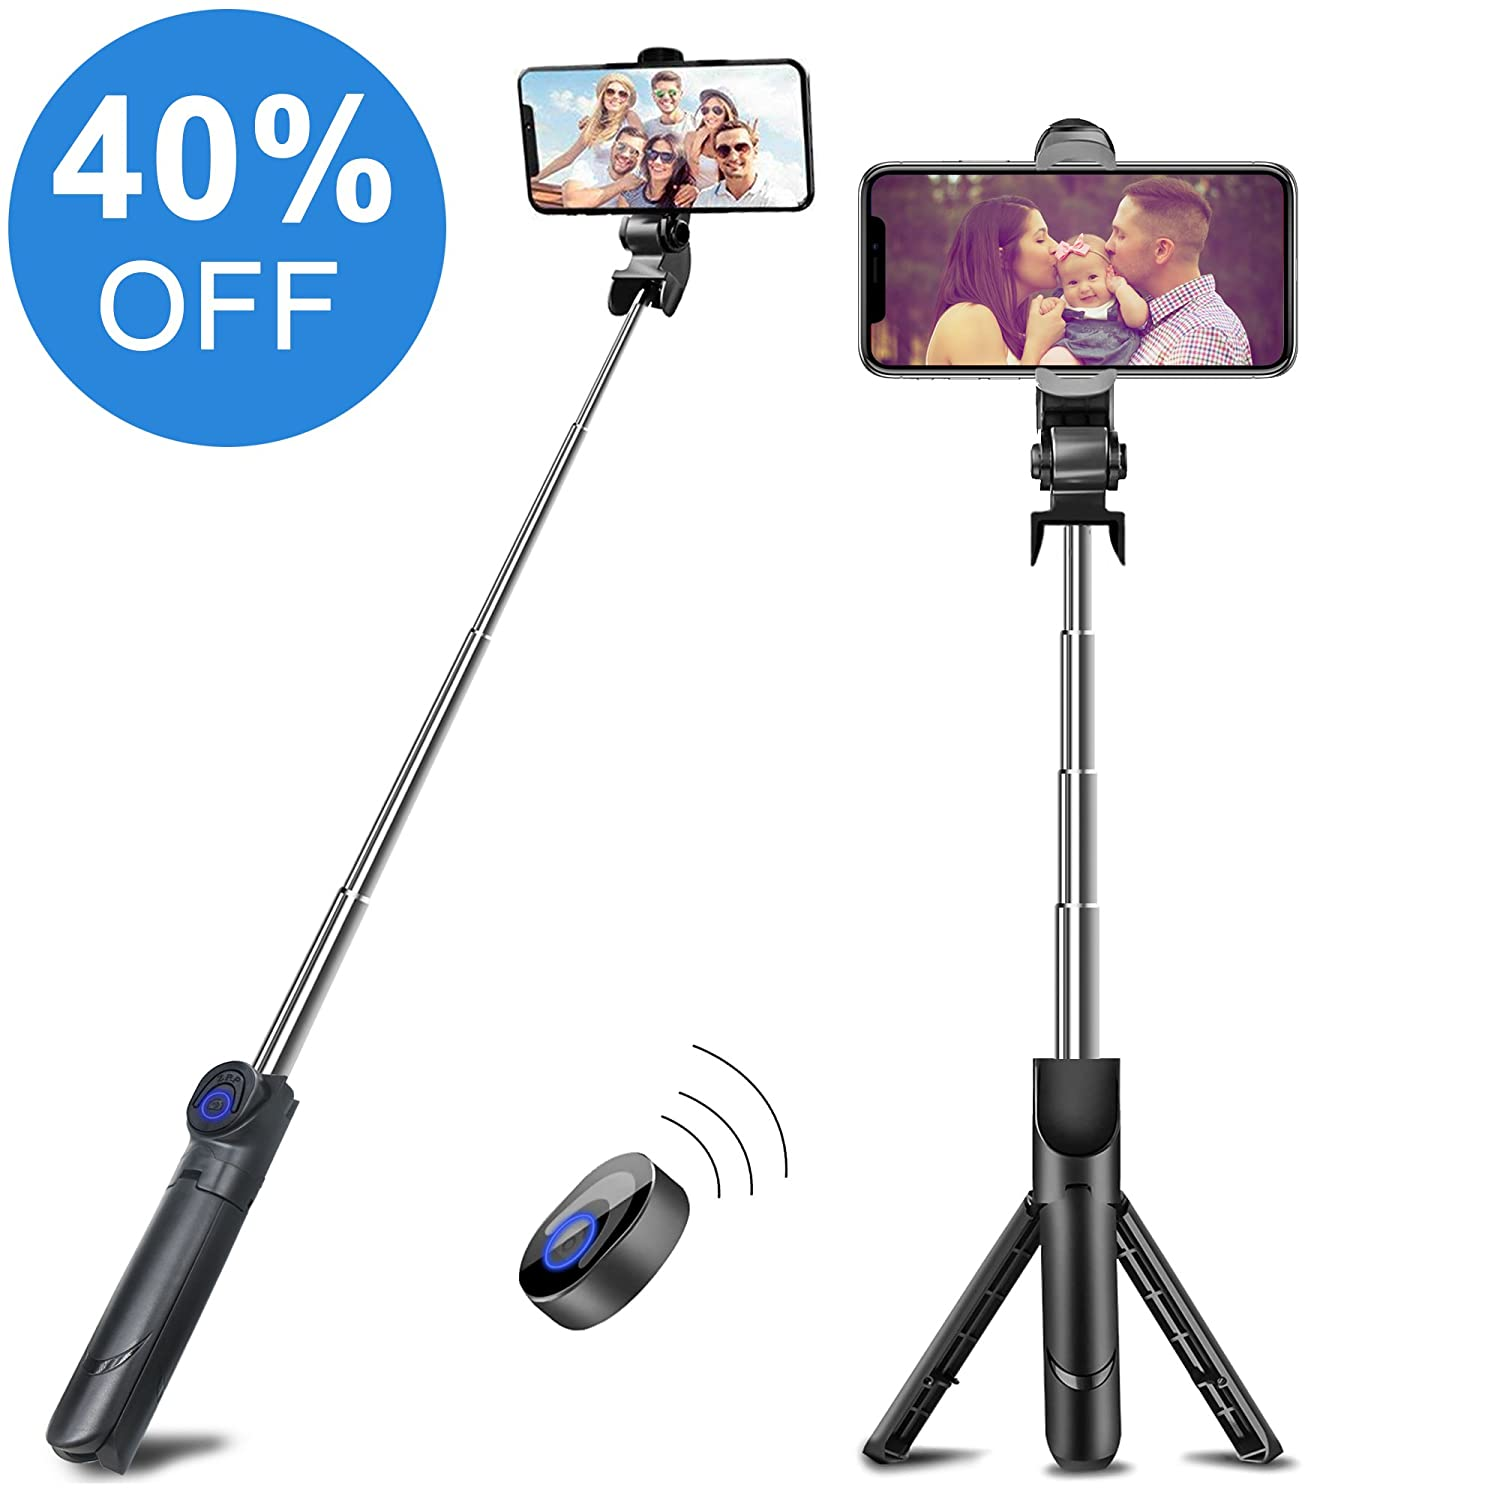 Selfie Stick, VIPFAN Extendable Bluetooth Selfie Stick Portable Monopod Built-in Bluetooth Wireless Shutter Compatible iPhone X,8,7,6s,6 Plus,5/5c 5s SE, Samsung, LG Other Smartphones(Black)